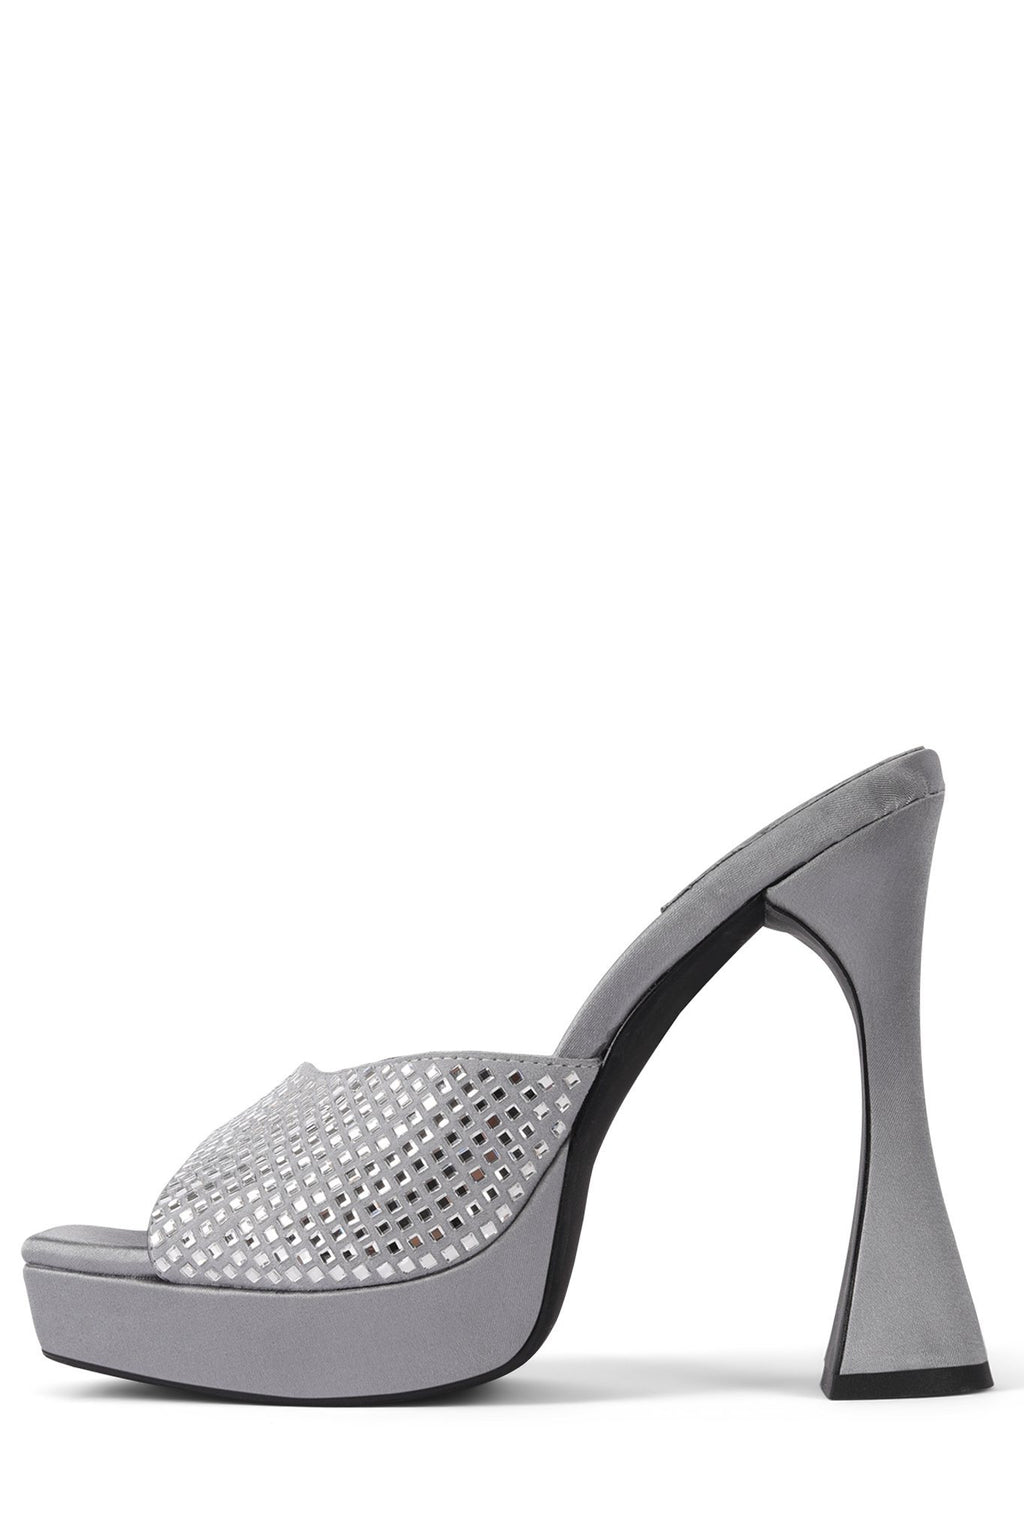 HOLLYWOODJ Jeffrey Campbell Grey Satin Silver 6